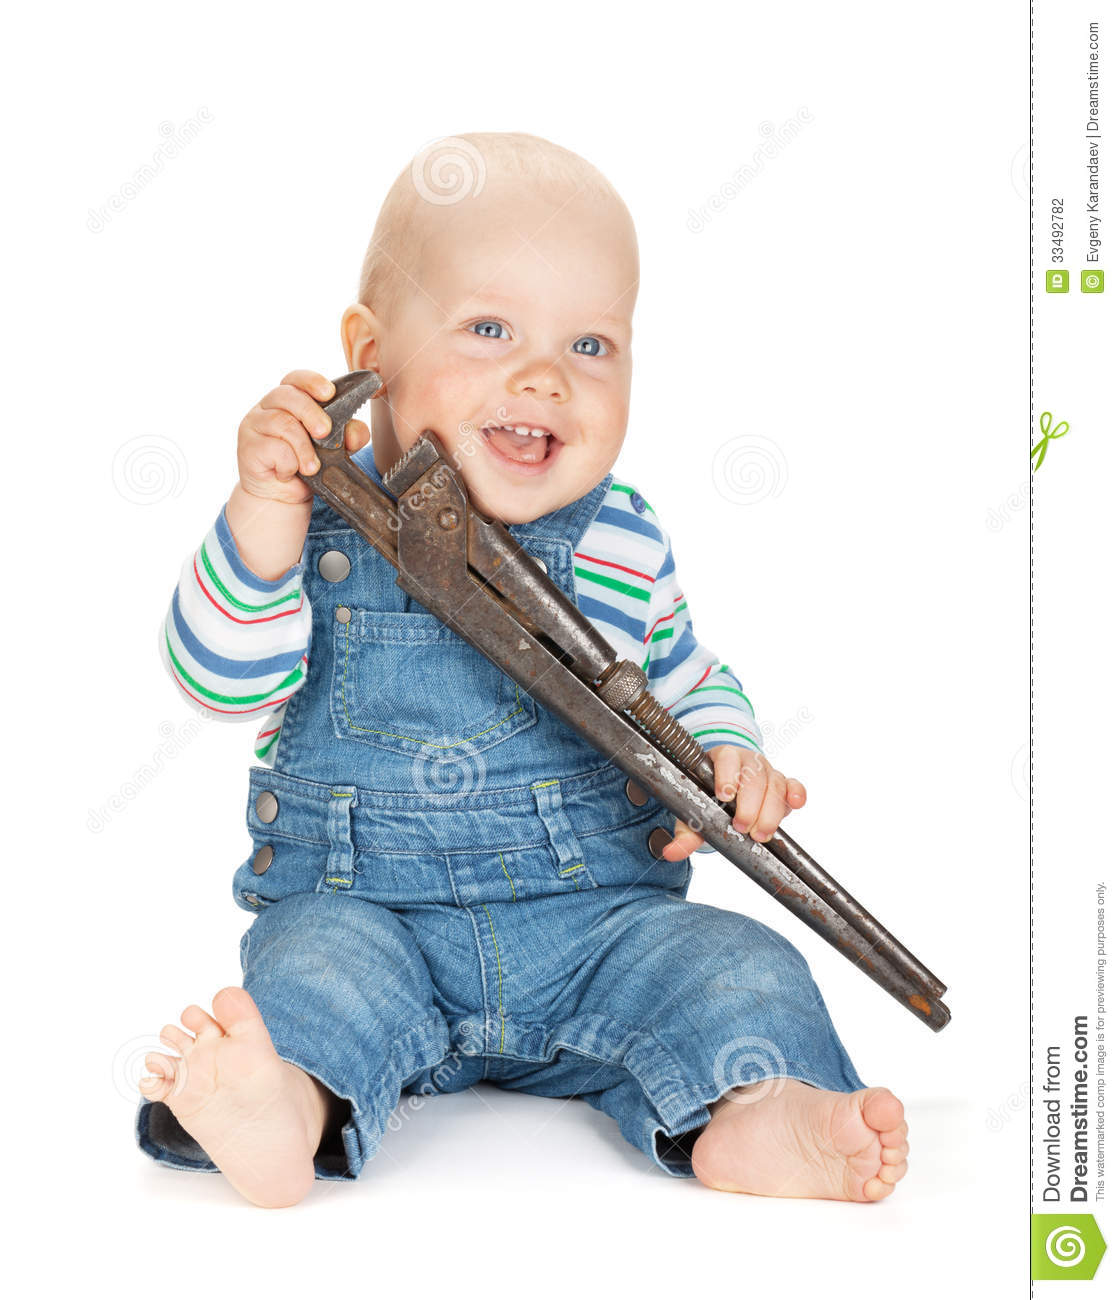 20501a15b7c Small Cute Baby Boy Worker In Jeans Stock Photo - Image of baby ...